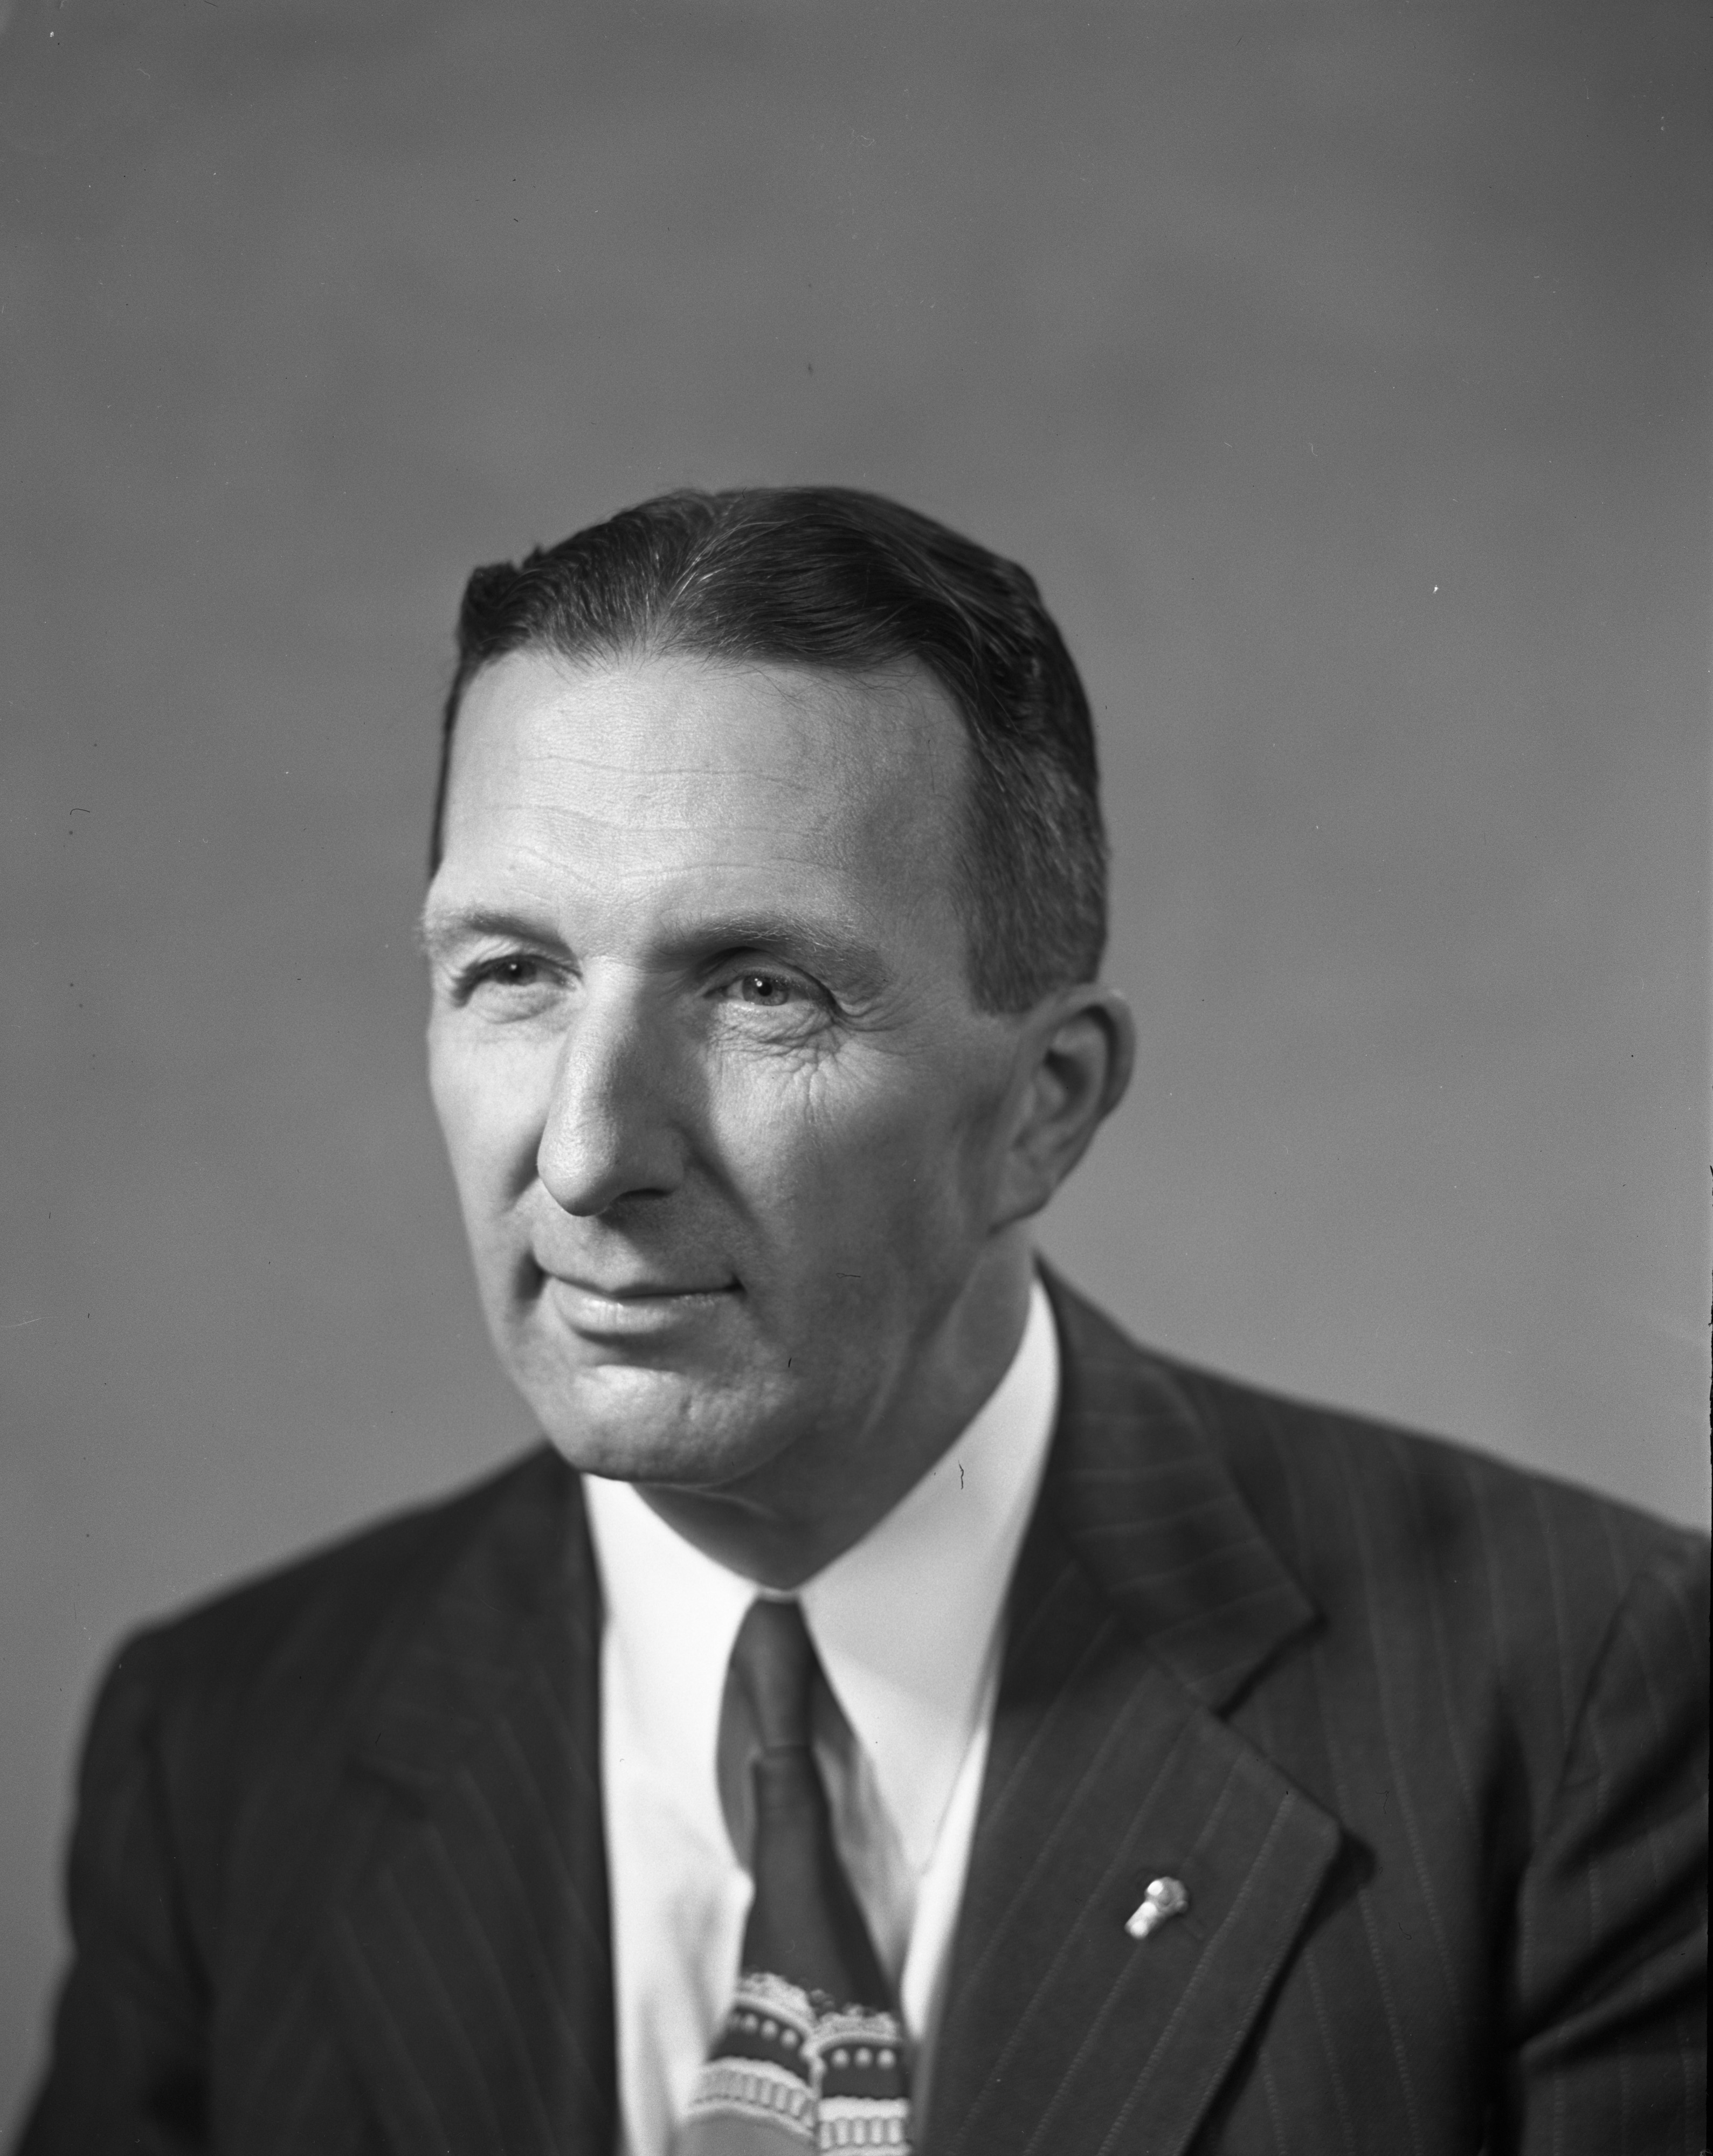 Fred Looker, appointed Ann Arbor City Clerk, November 1949 image